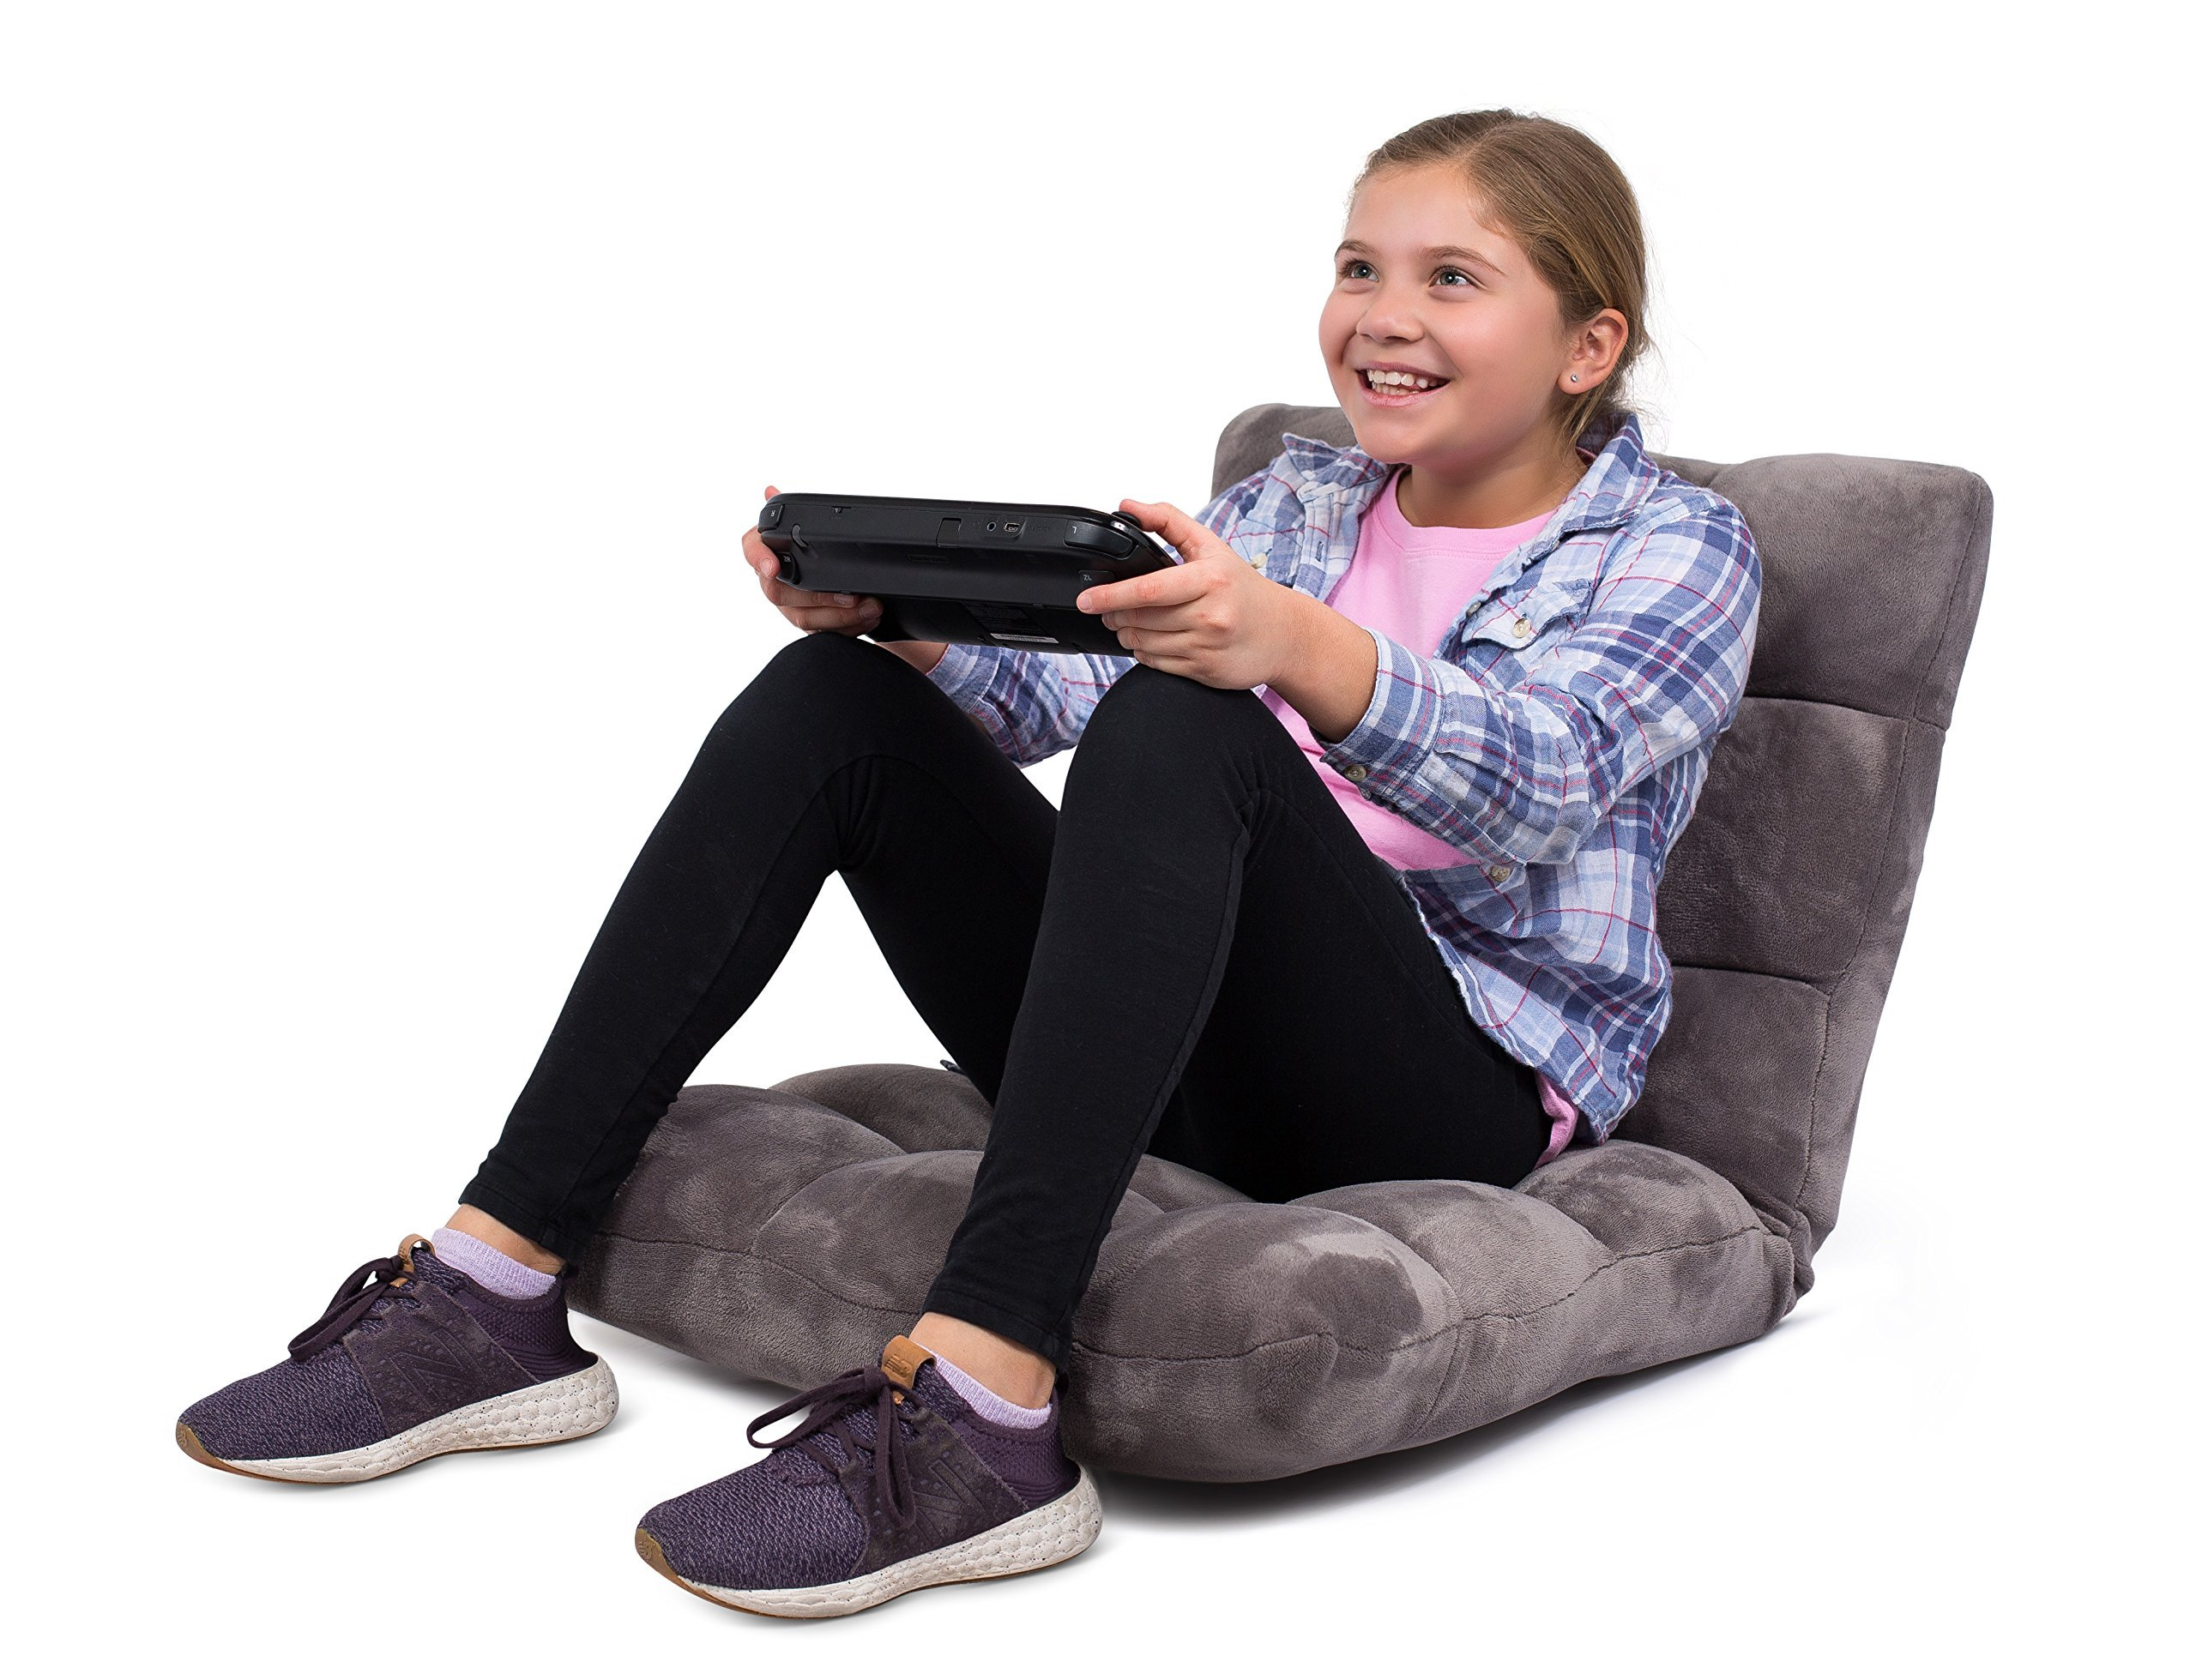 BIRDROCK HOME Adjustable 14-Position Memory Foam Floor Chair - Padded Gaming Chair - Comfortable Back Support - Rocker - Great for Reading Games Meditating - Fully Assembled - Grey by BIRDROCK HOME